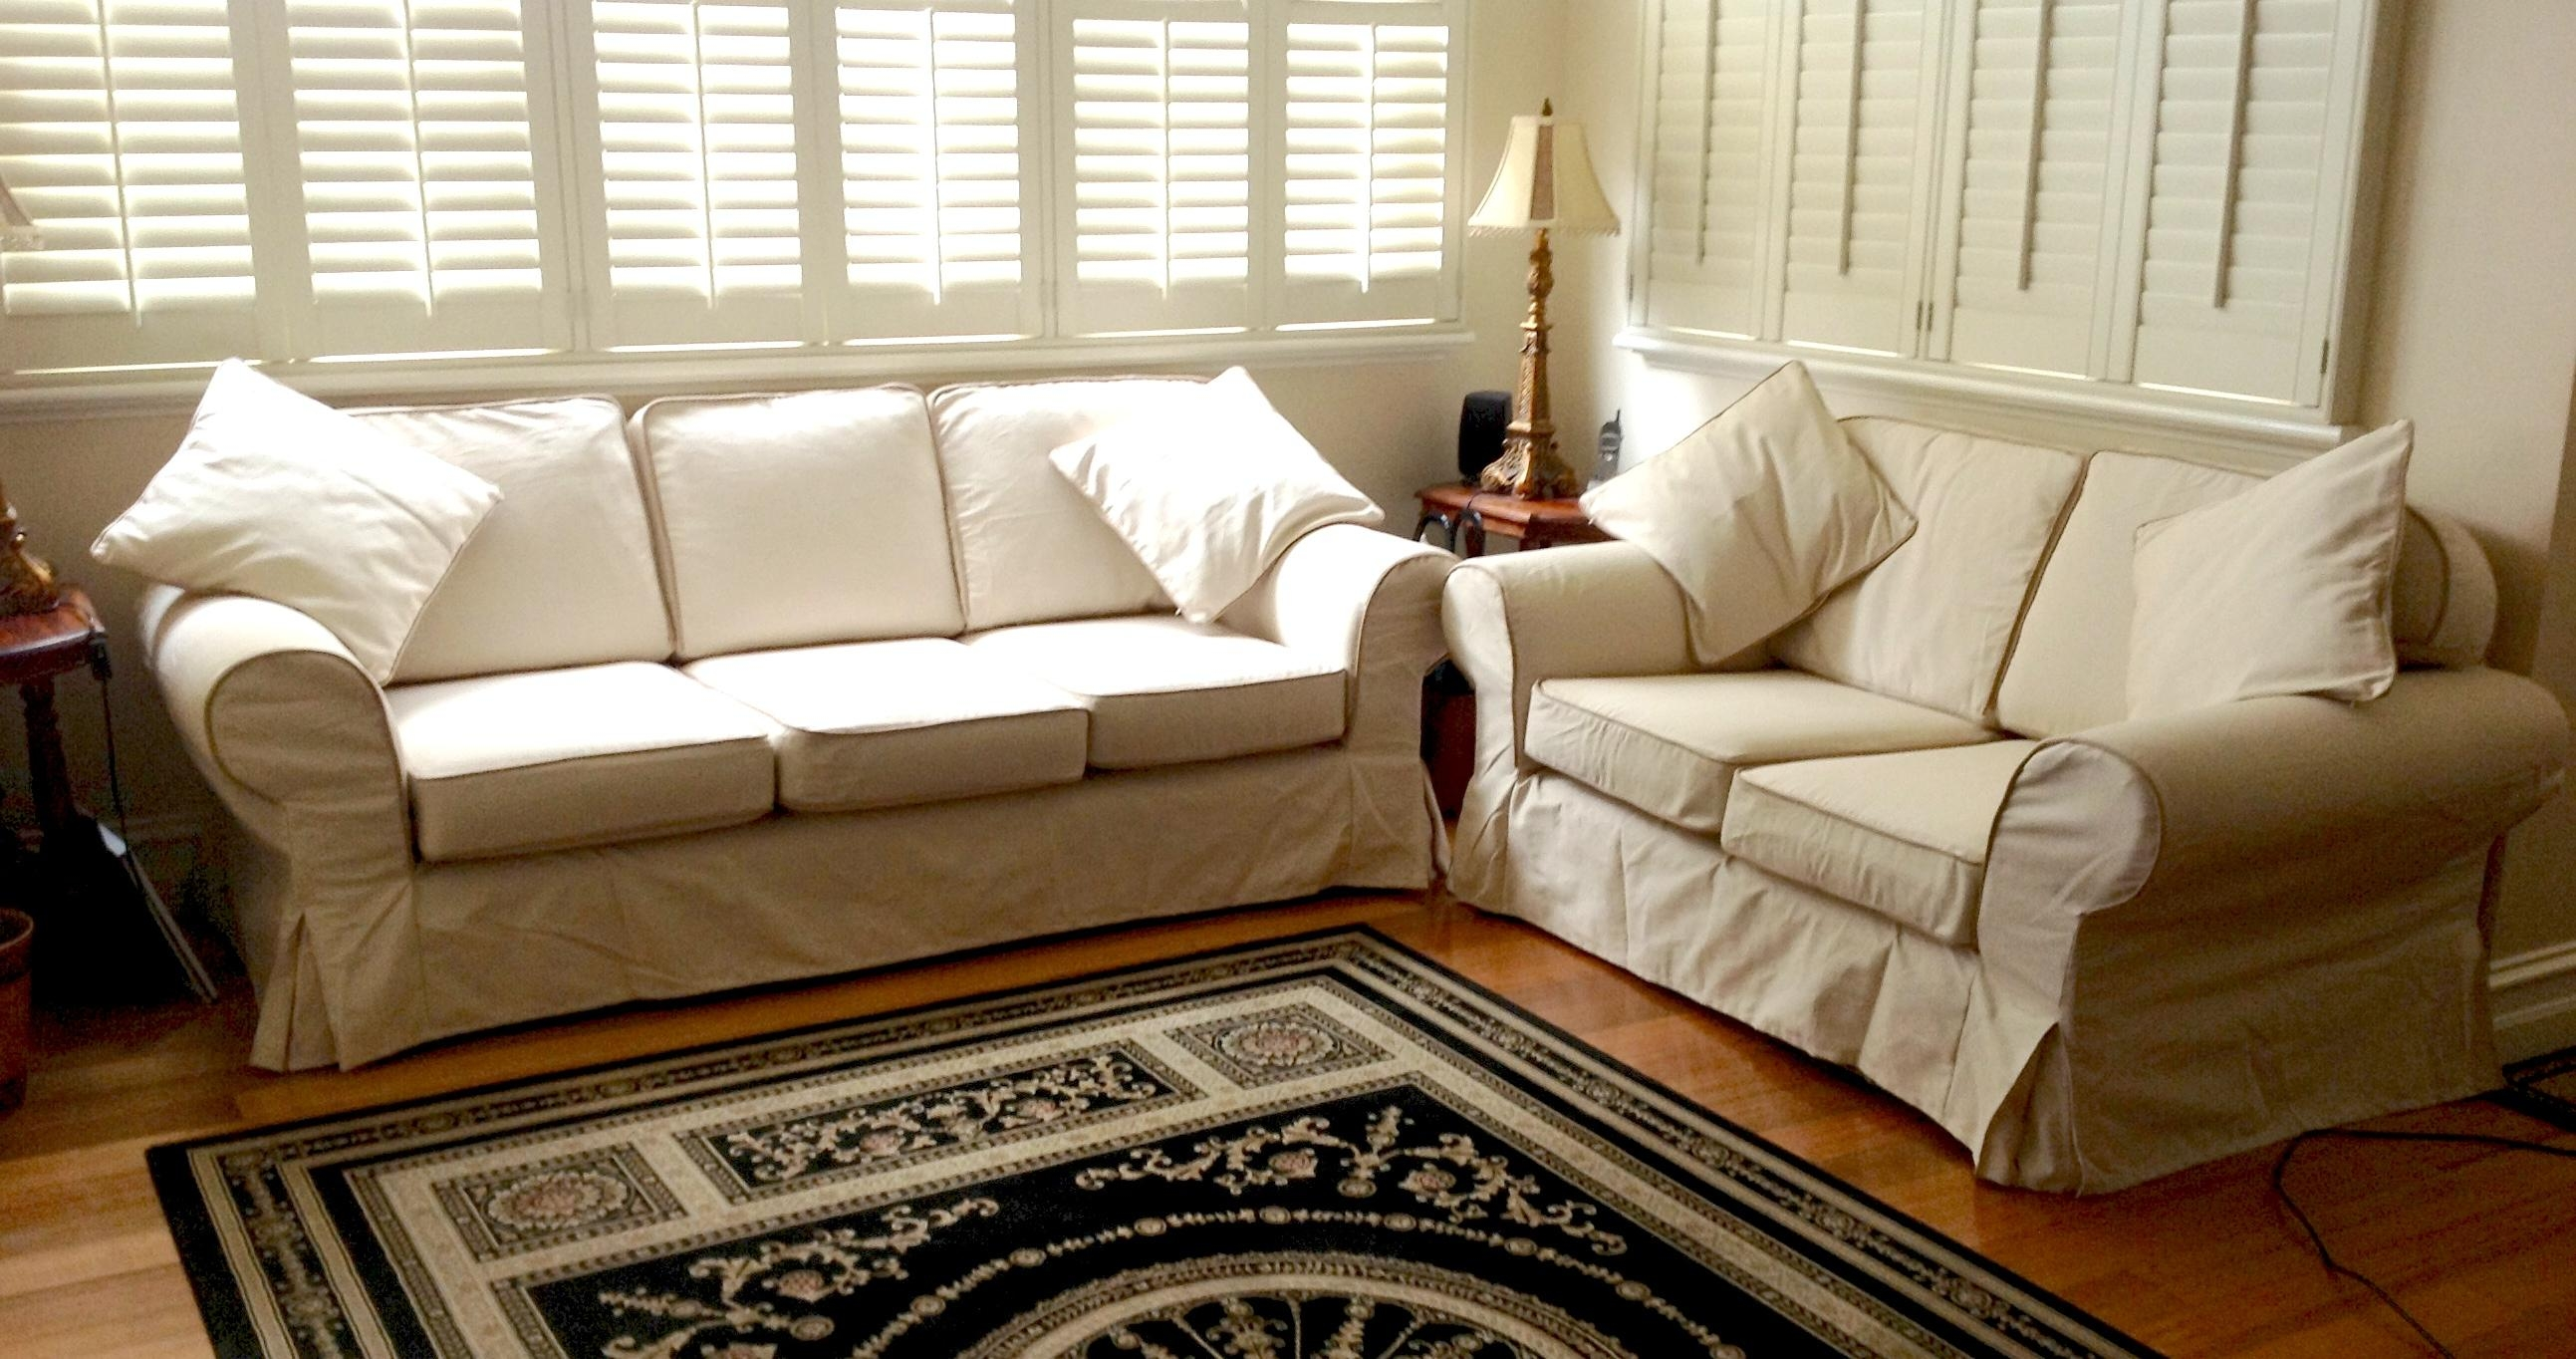 Custom Slipcovers And Couch Cover For Any Sofa Online Pertaining To Sofa Settee Covers (Image 1 of 22)